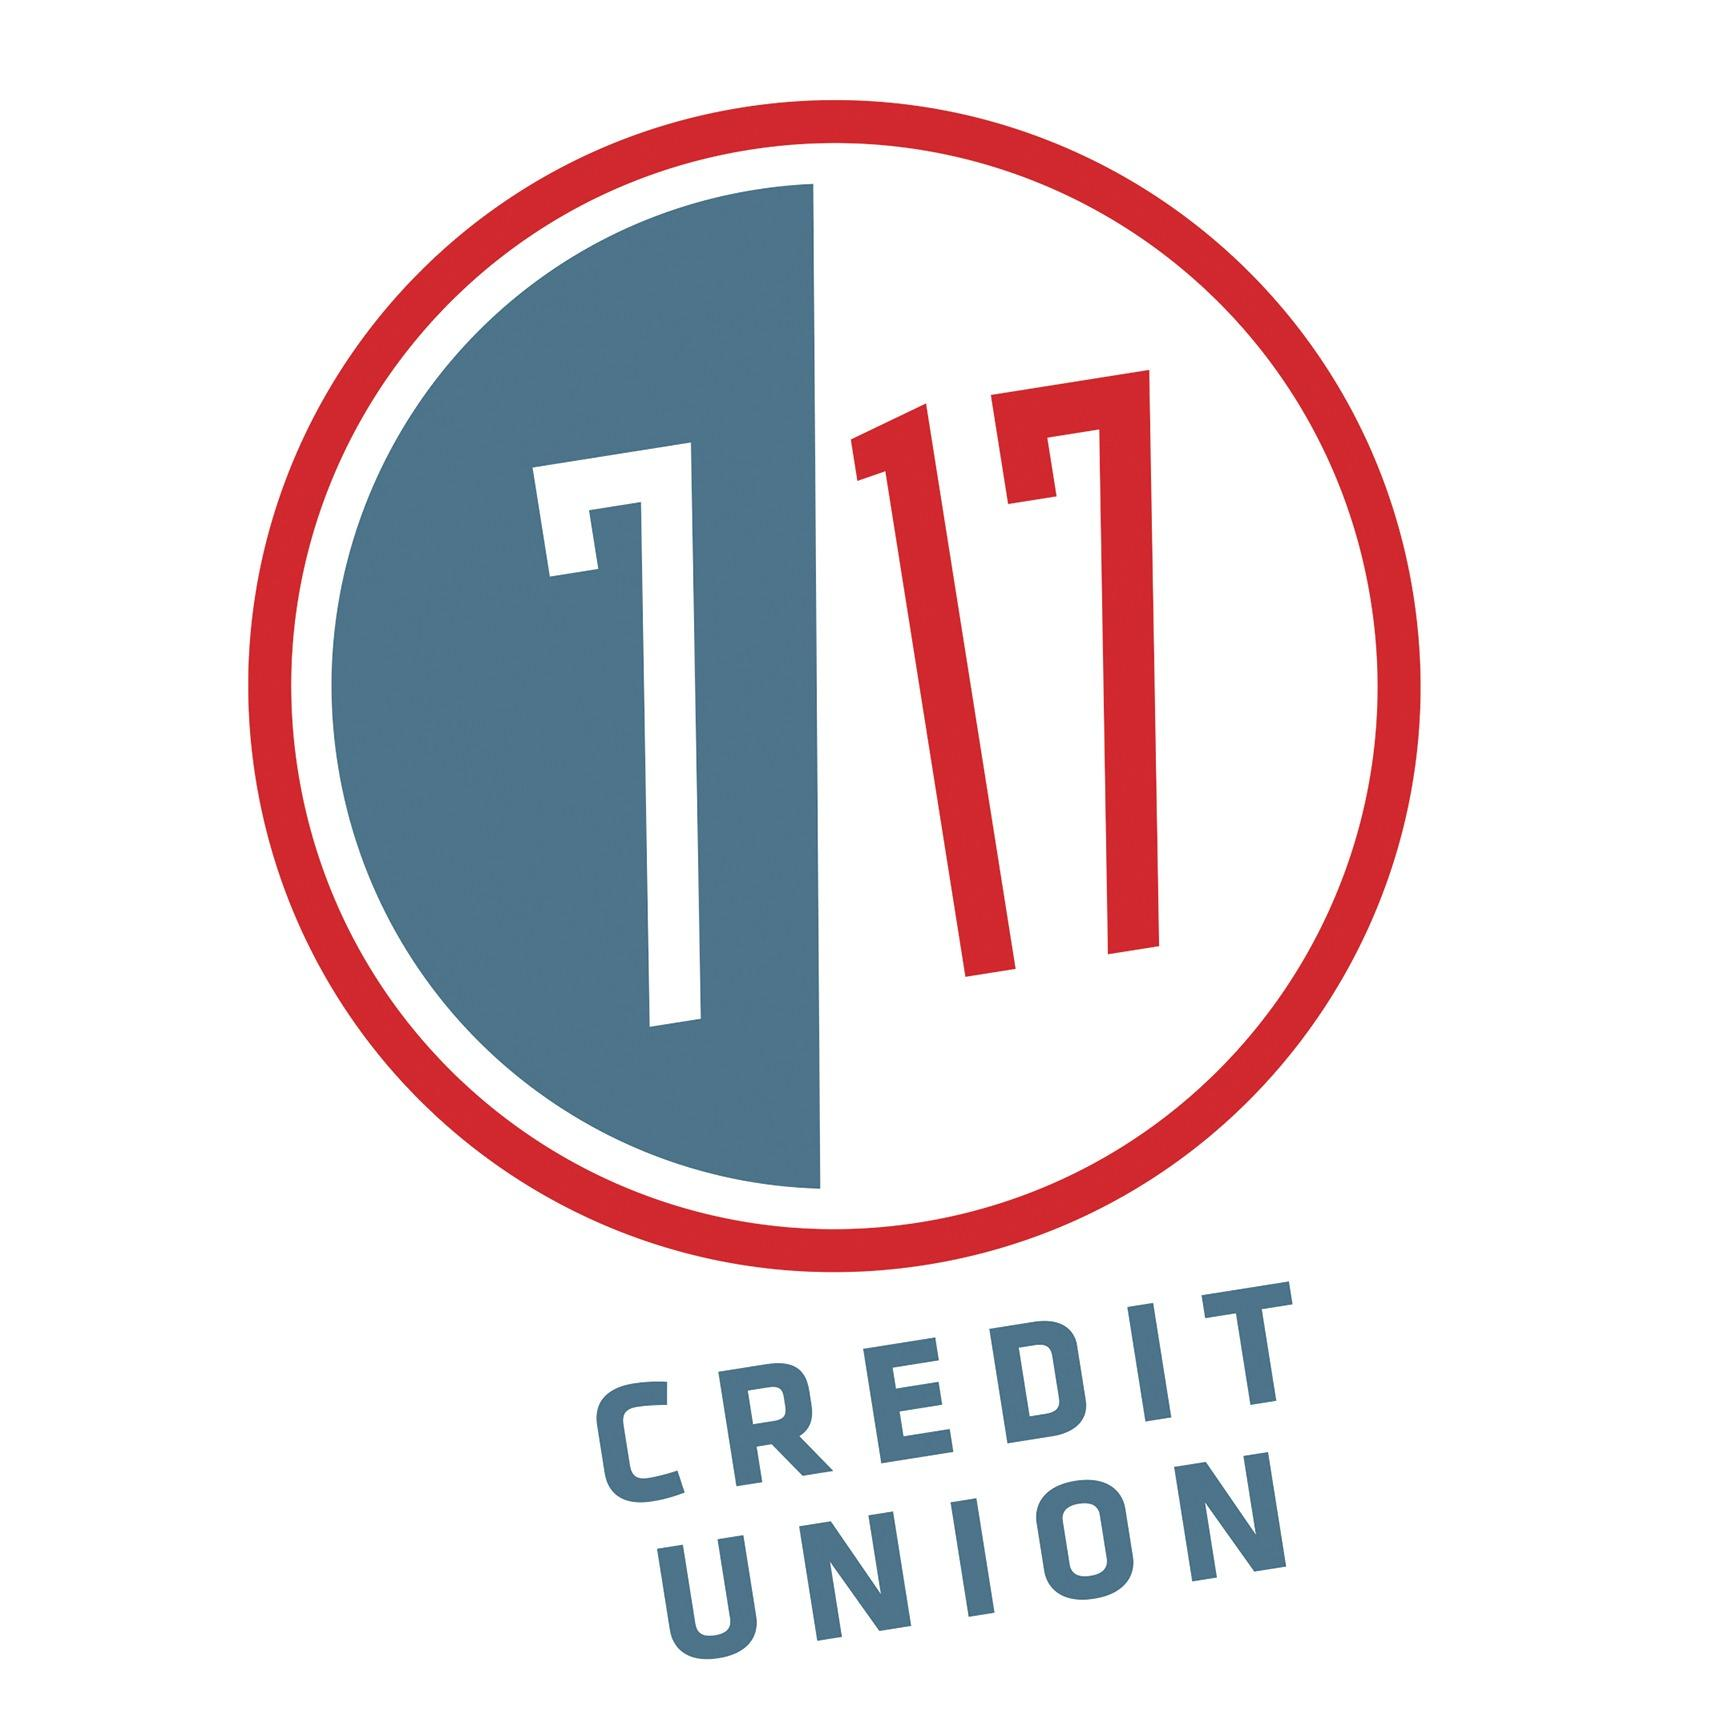 7 17 Credit Union - Ravenna Office